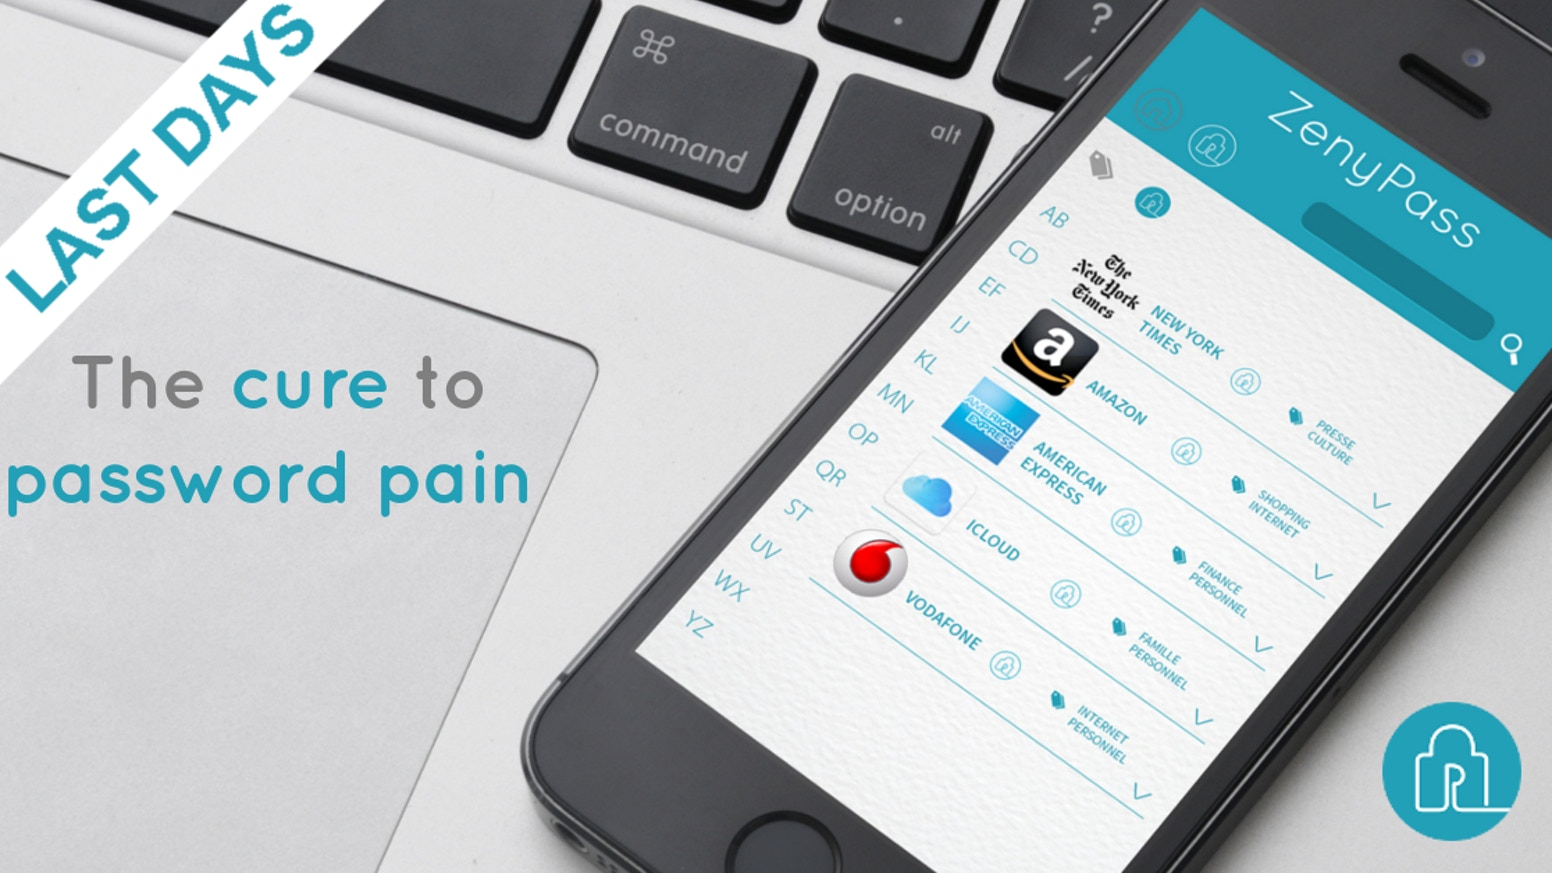 Are you struggling with your passwords? ZenyPass is a web application which allows you to manage your passwords in a simple and secure way, and to connect more easily to all your accounts.